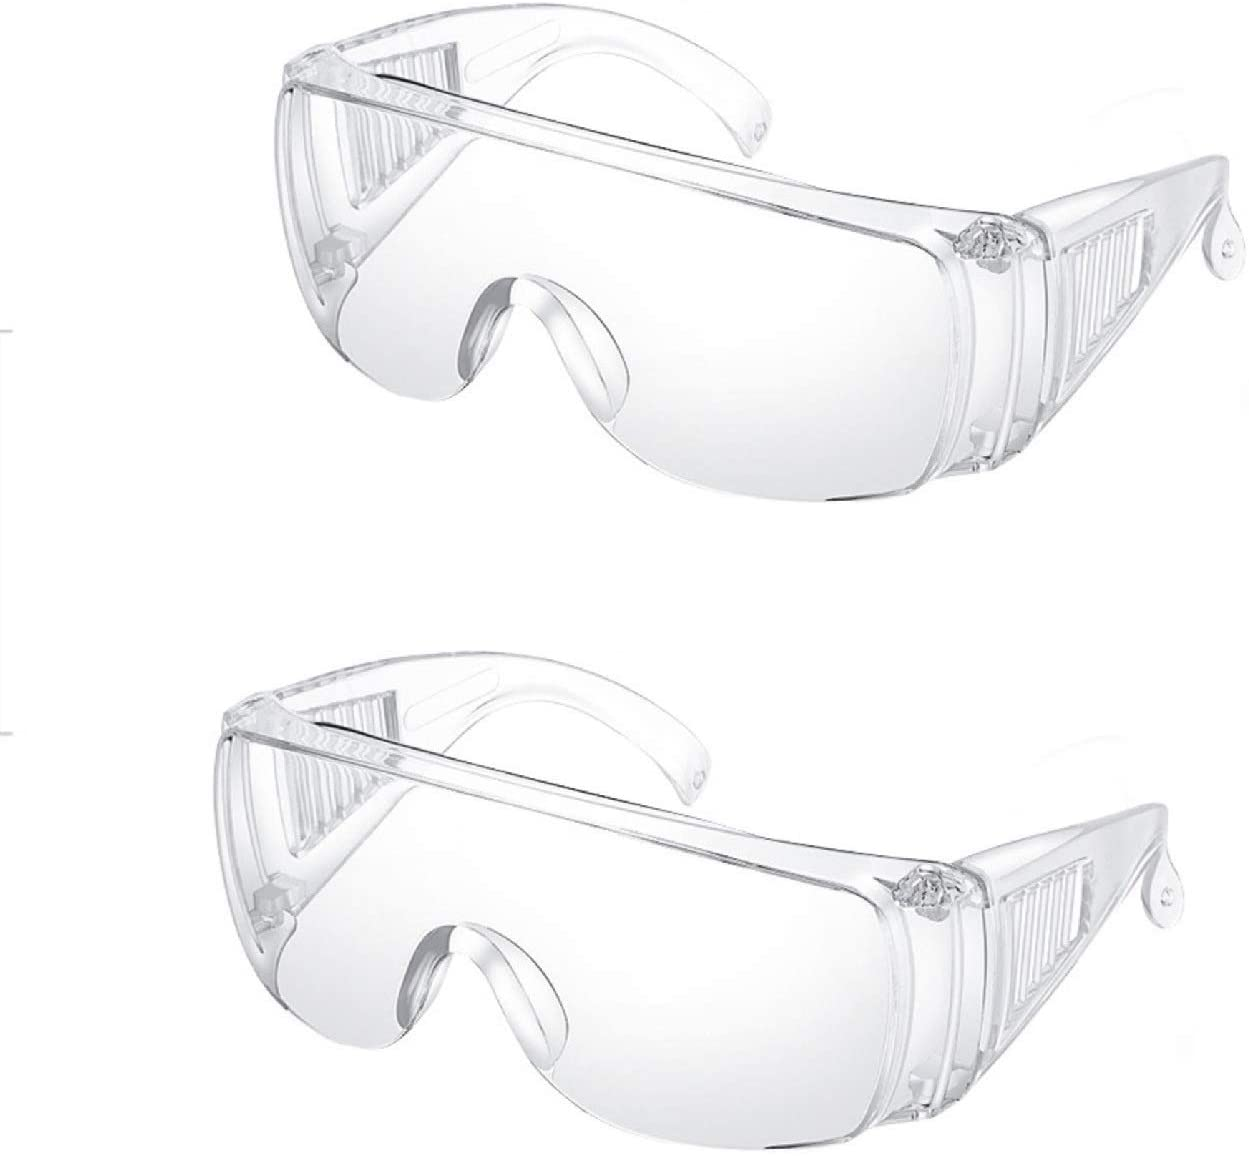 100 PCS Safety Goggles Glasses, Personal Protection, Crystal Clear Lens Wide-Vision Adjustable, Dust-Proof Breathable Glassess